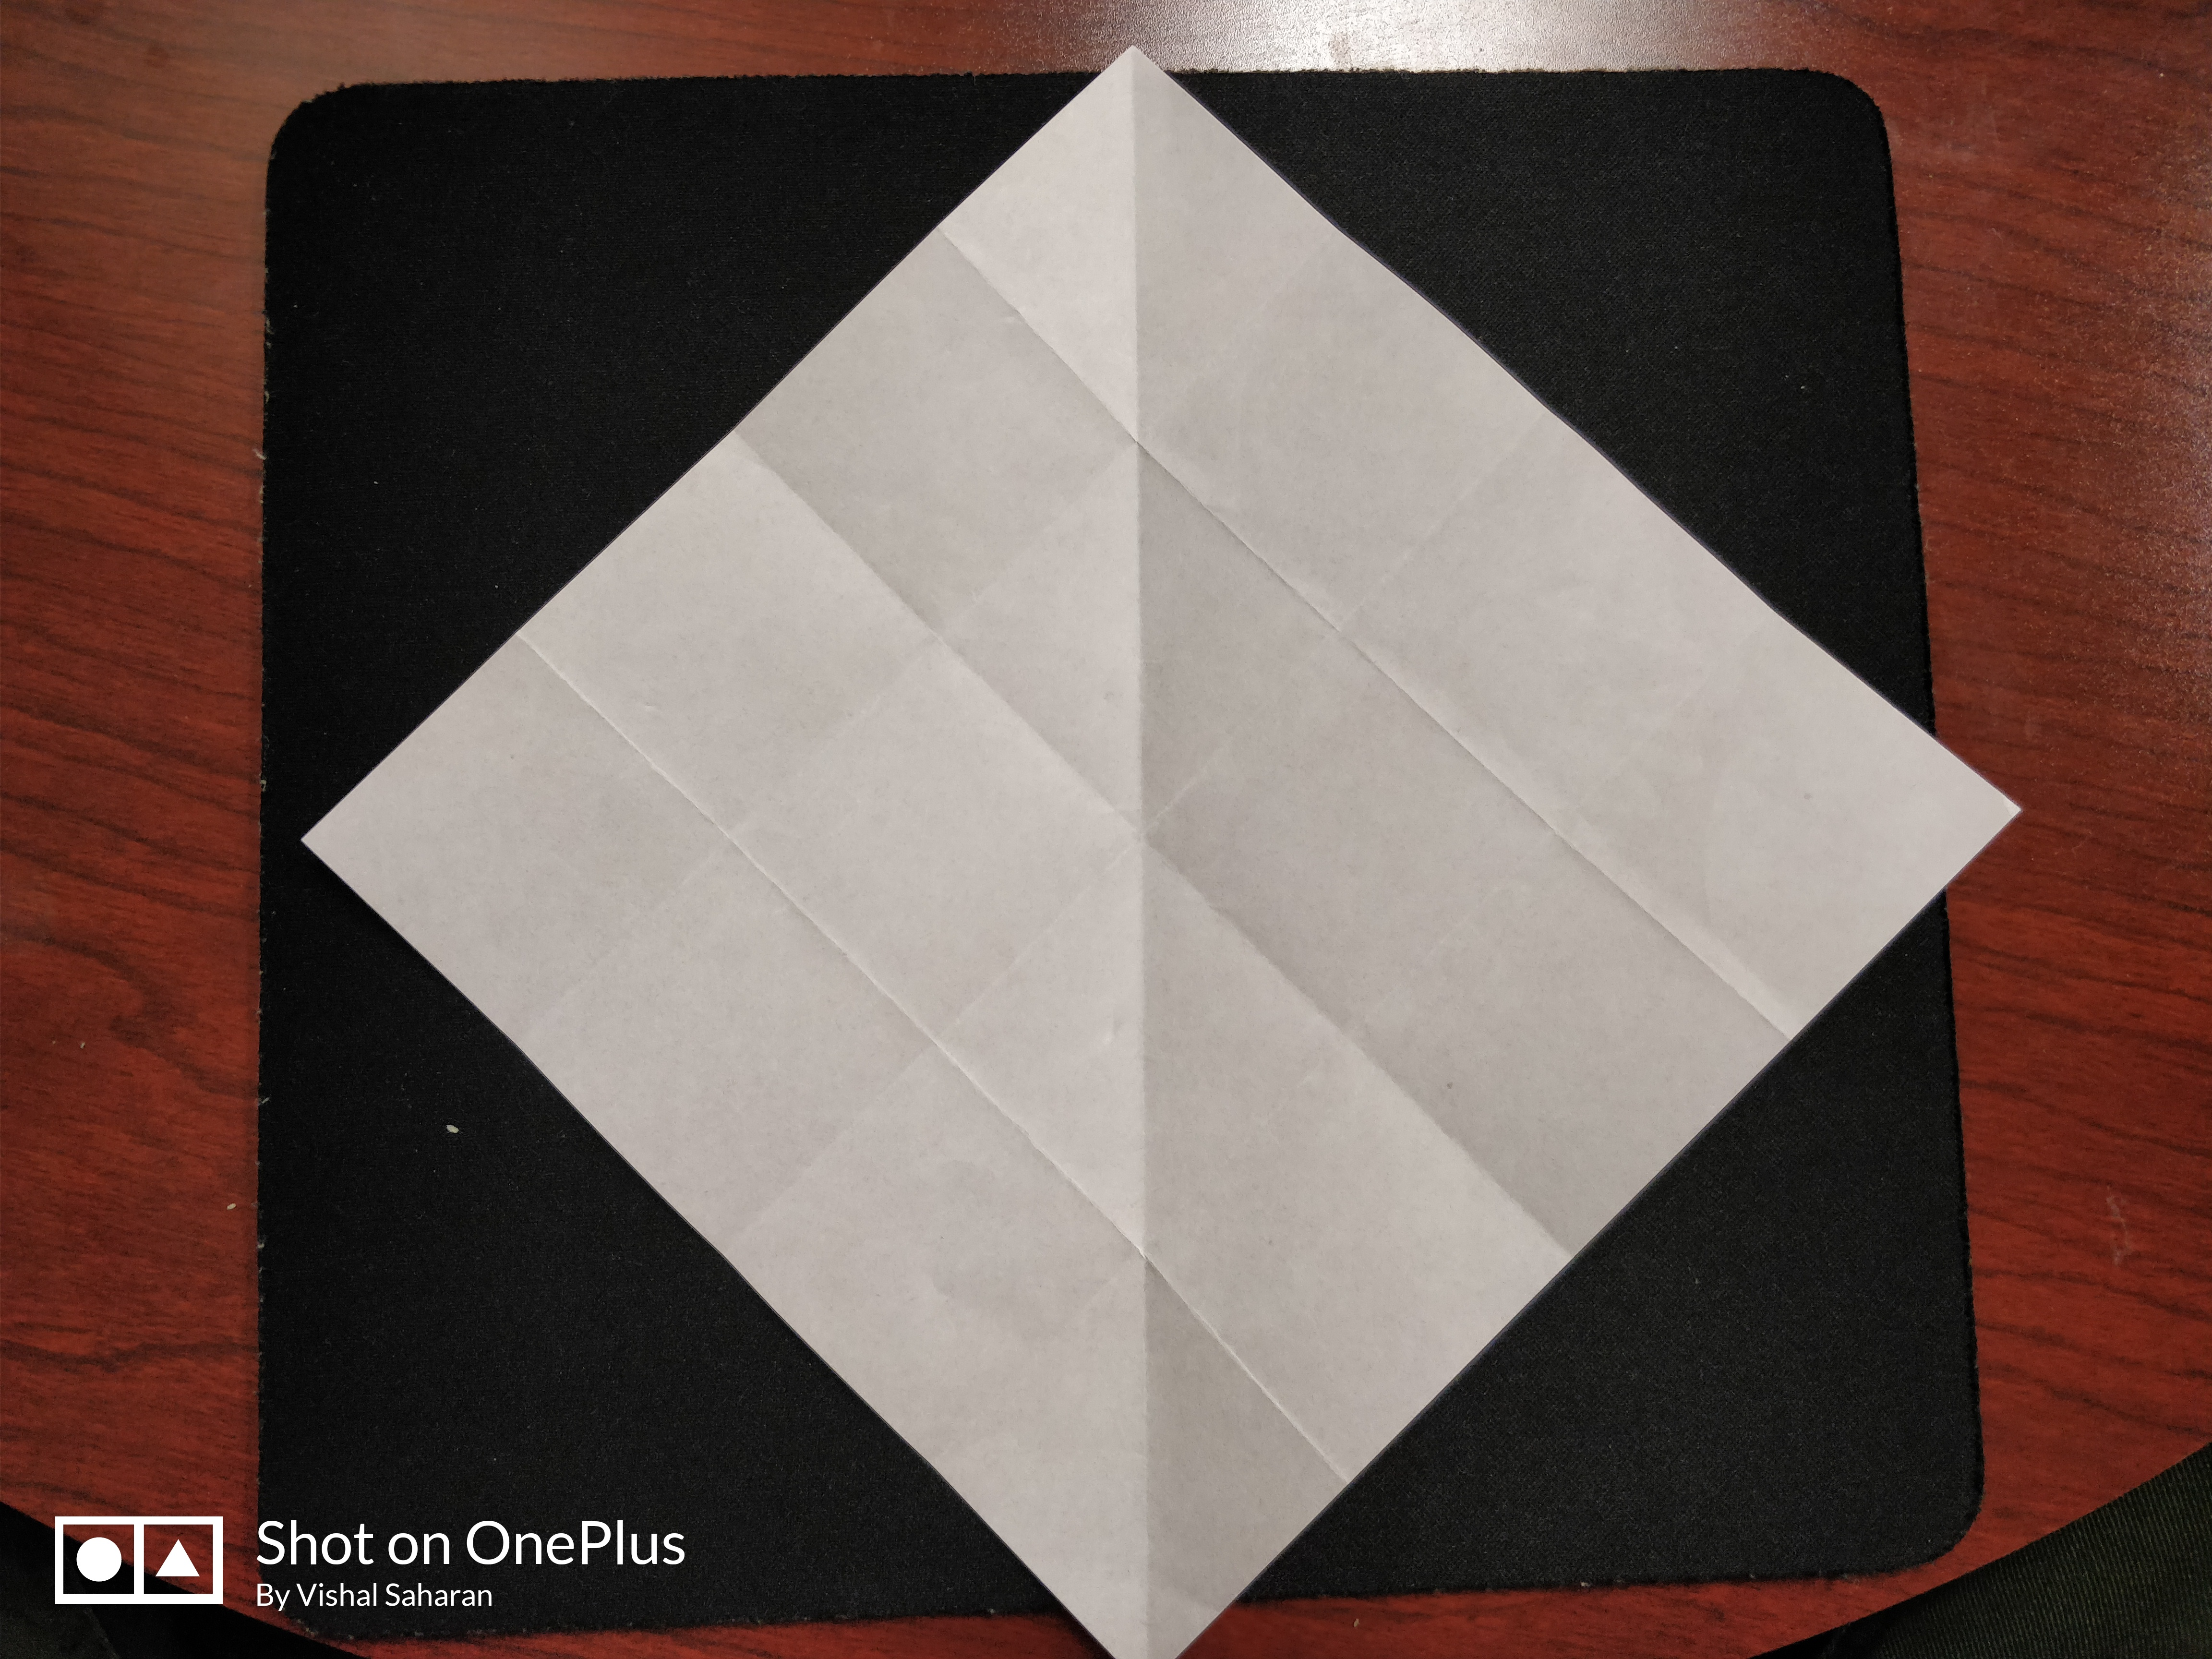 Picture of Turn the Paper 90 Degrees.